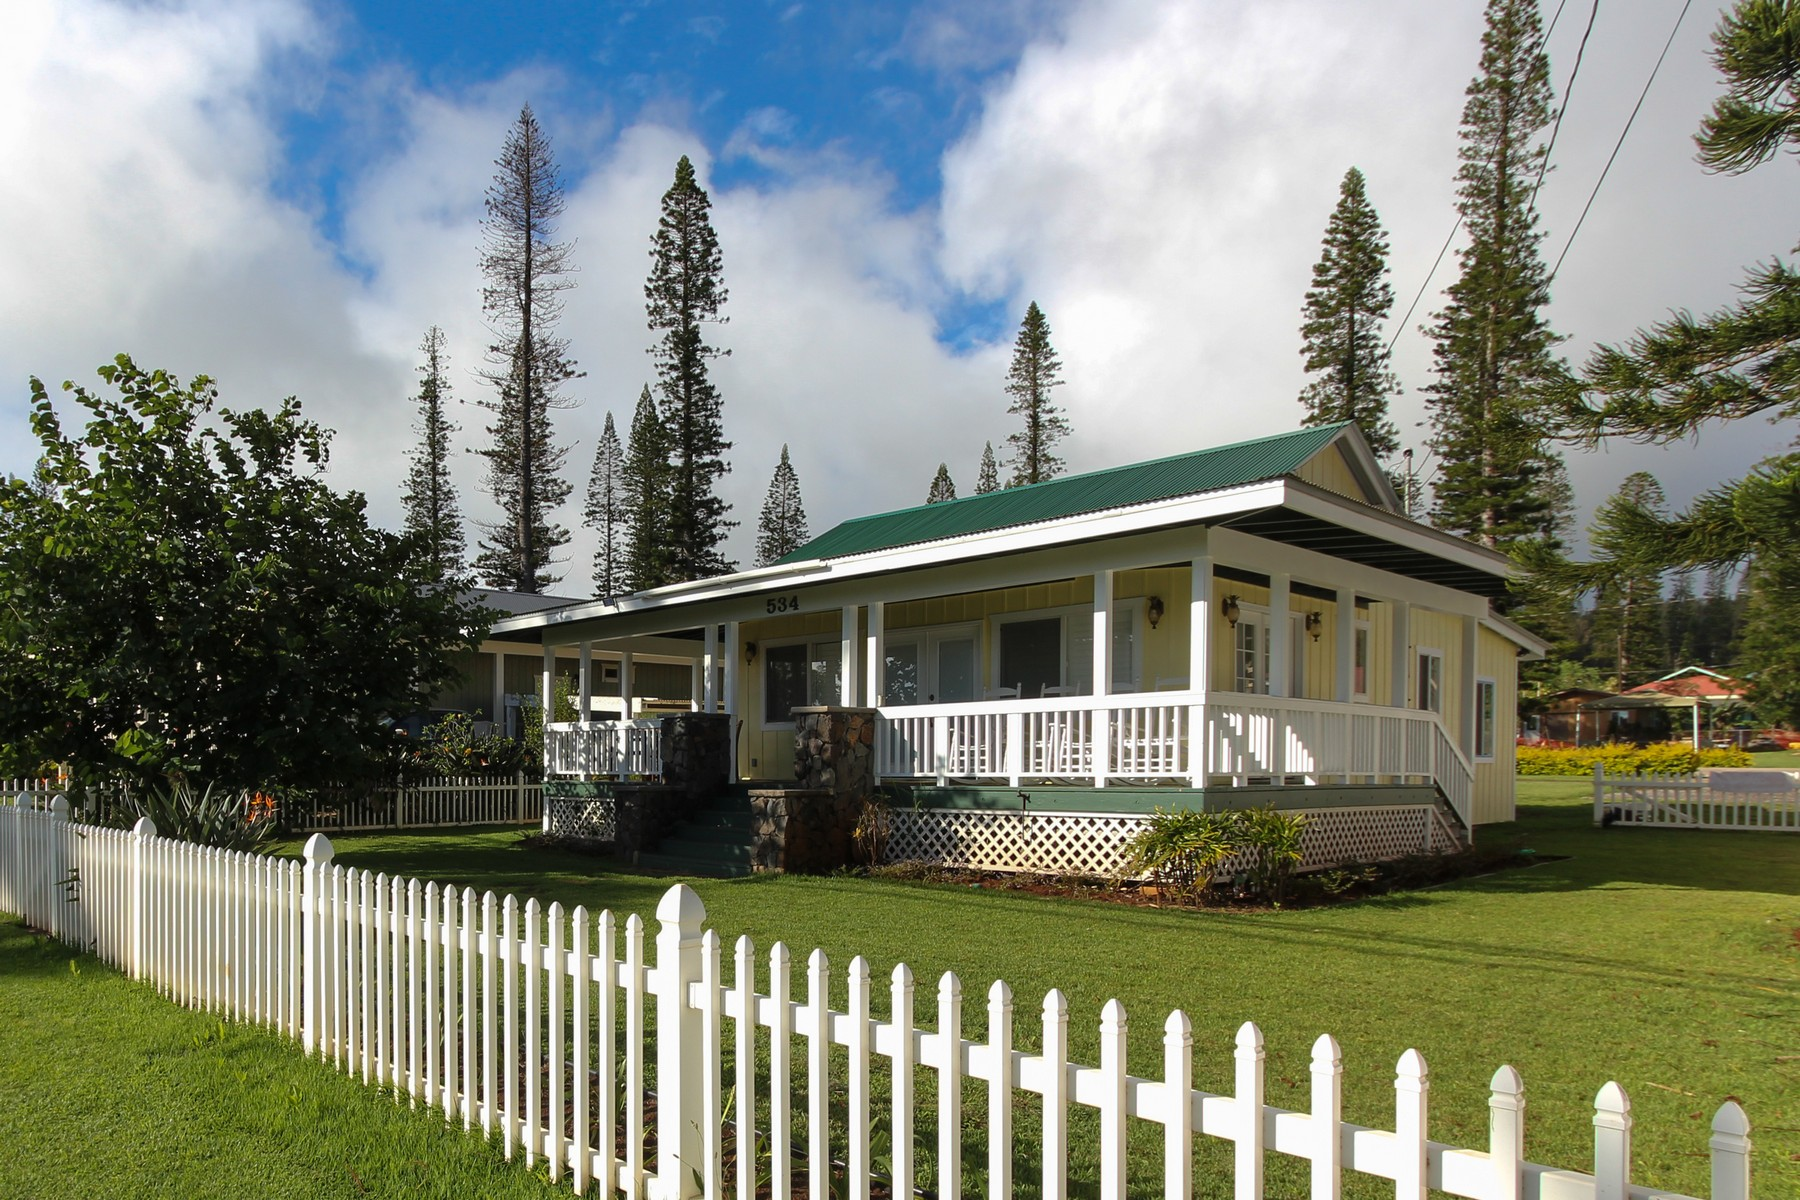 Single Family Home for Sale at Plantation Style Perfection on Lana'i 534 Fraser Avenue Lanai City, Hawaii 96763 United States